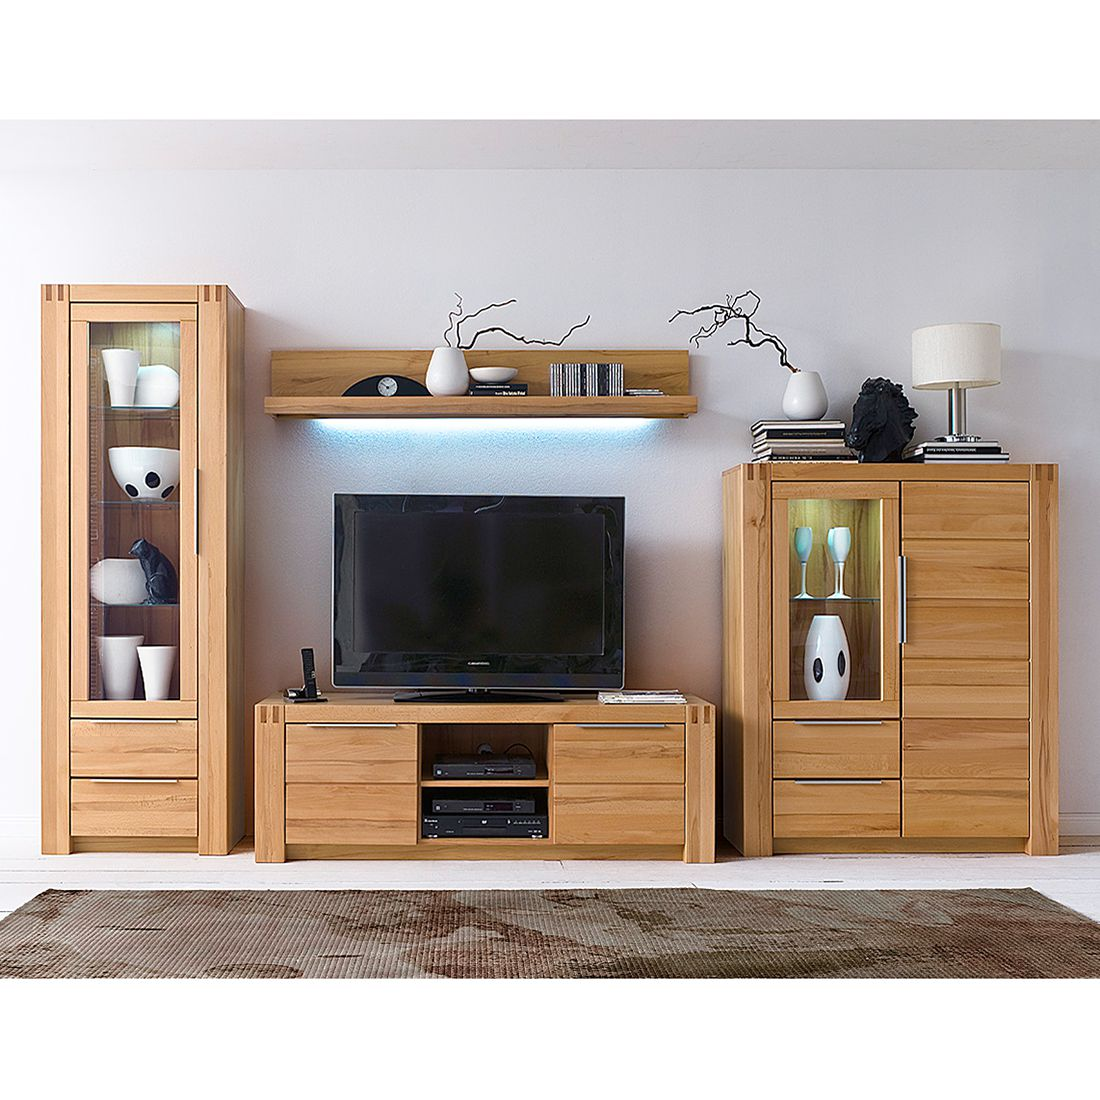 wohnwand vigas ii 4 teilig buche massiv lackiert. Black Bedroom Furniture Sets. Home Design Ideas